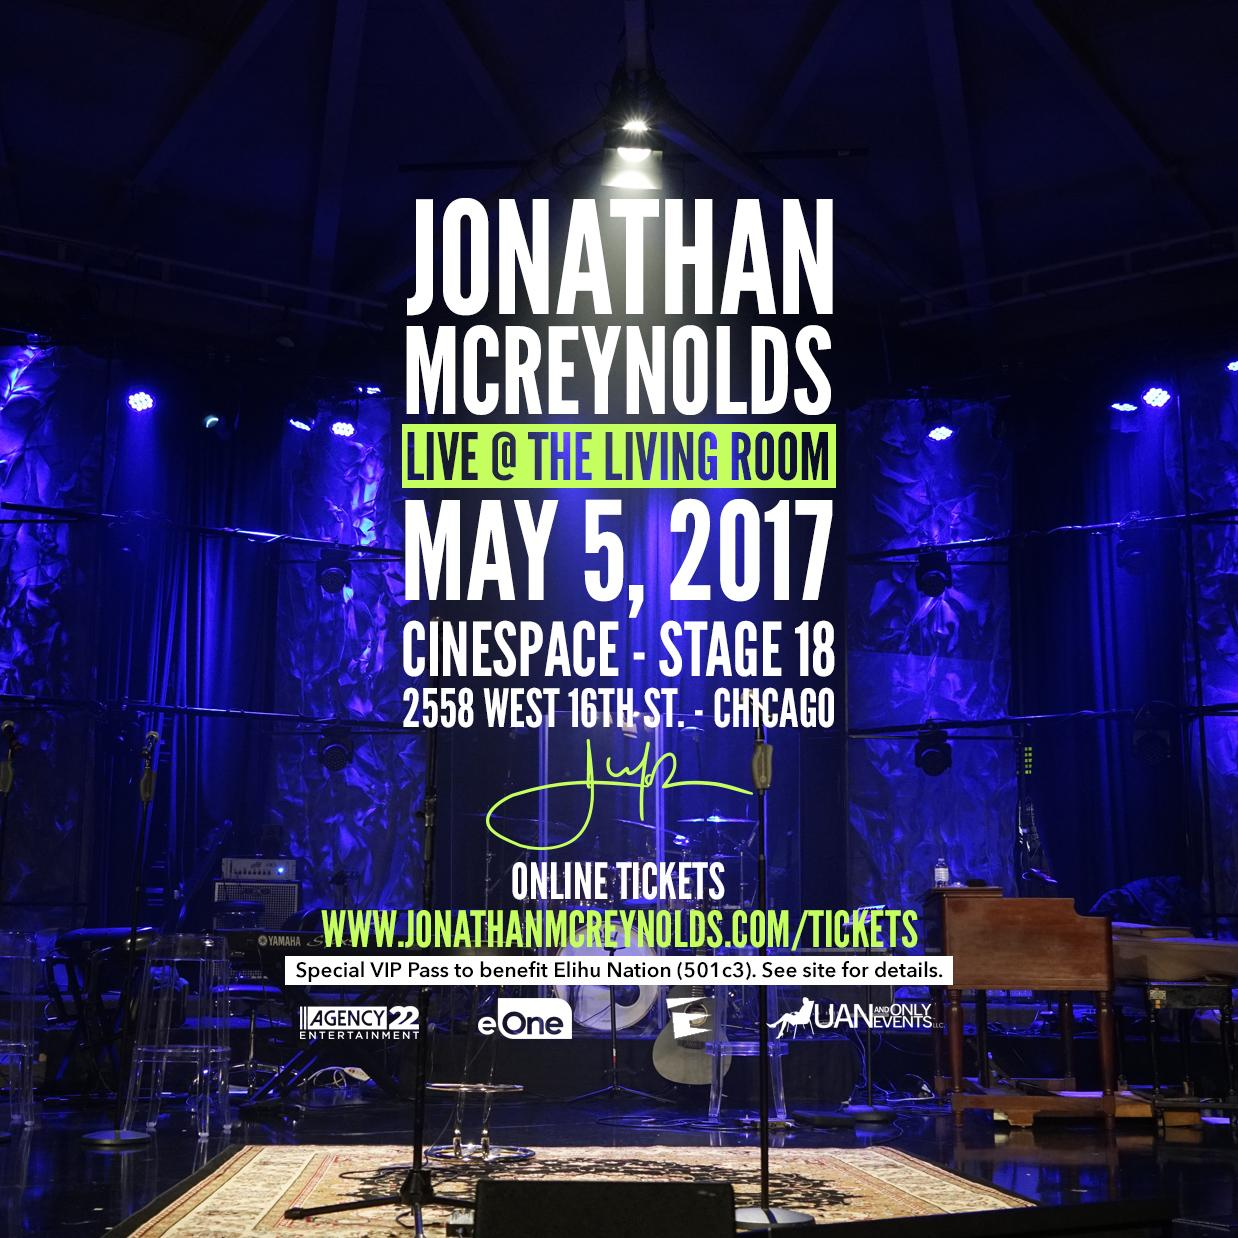 Jonathan Mcreynolds Live Recording The Life Room